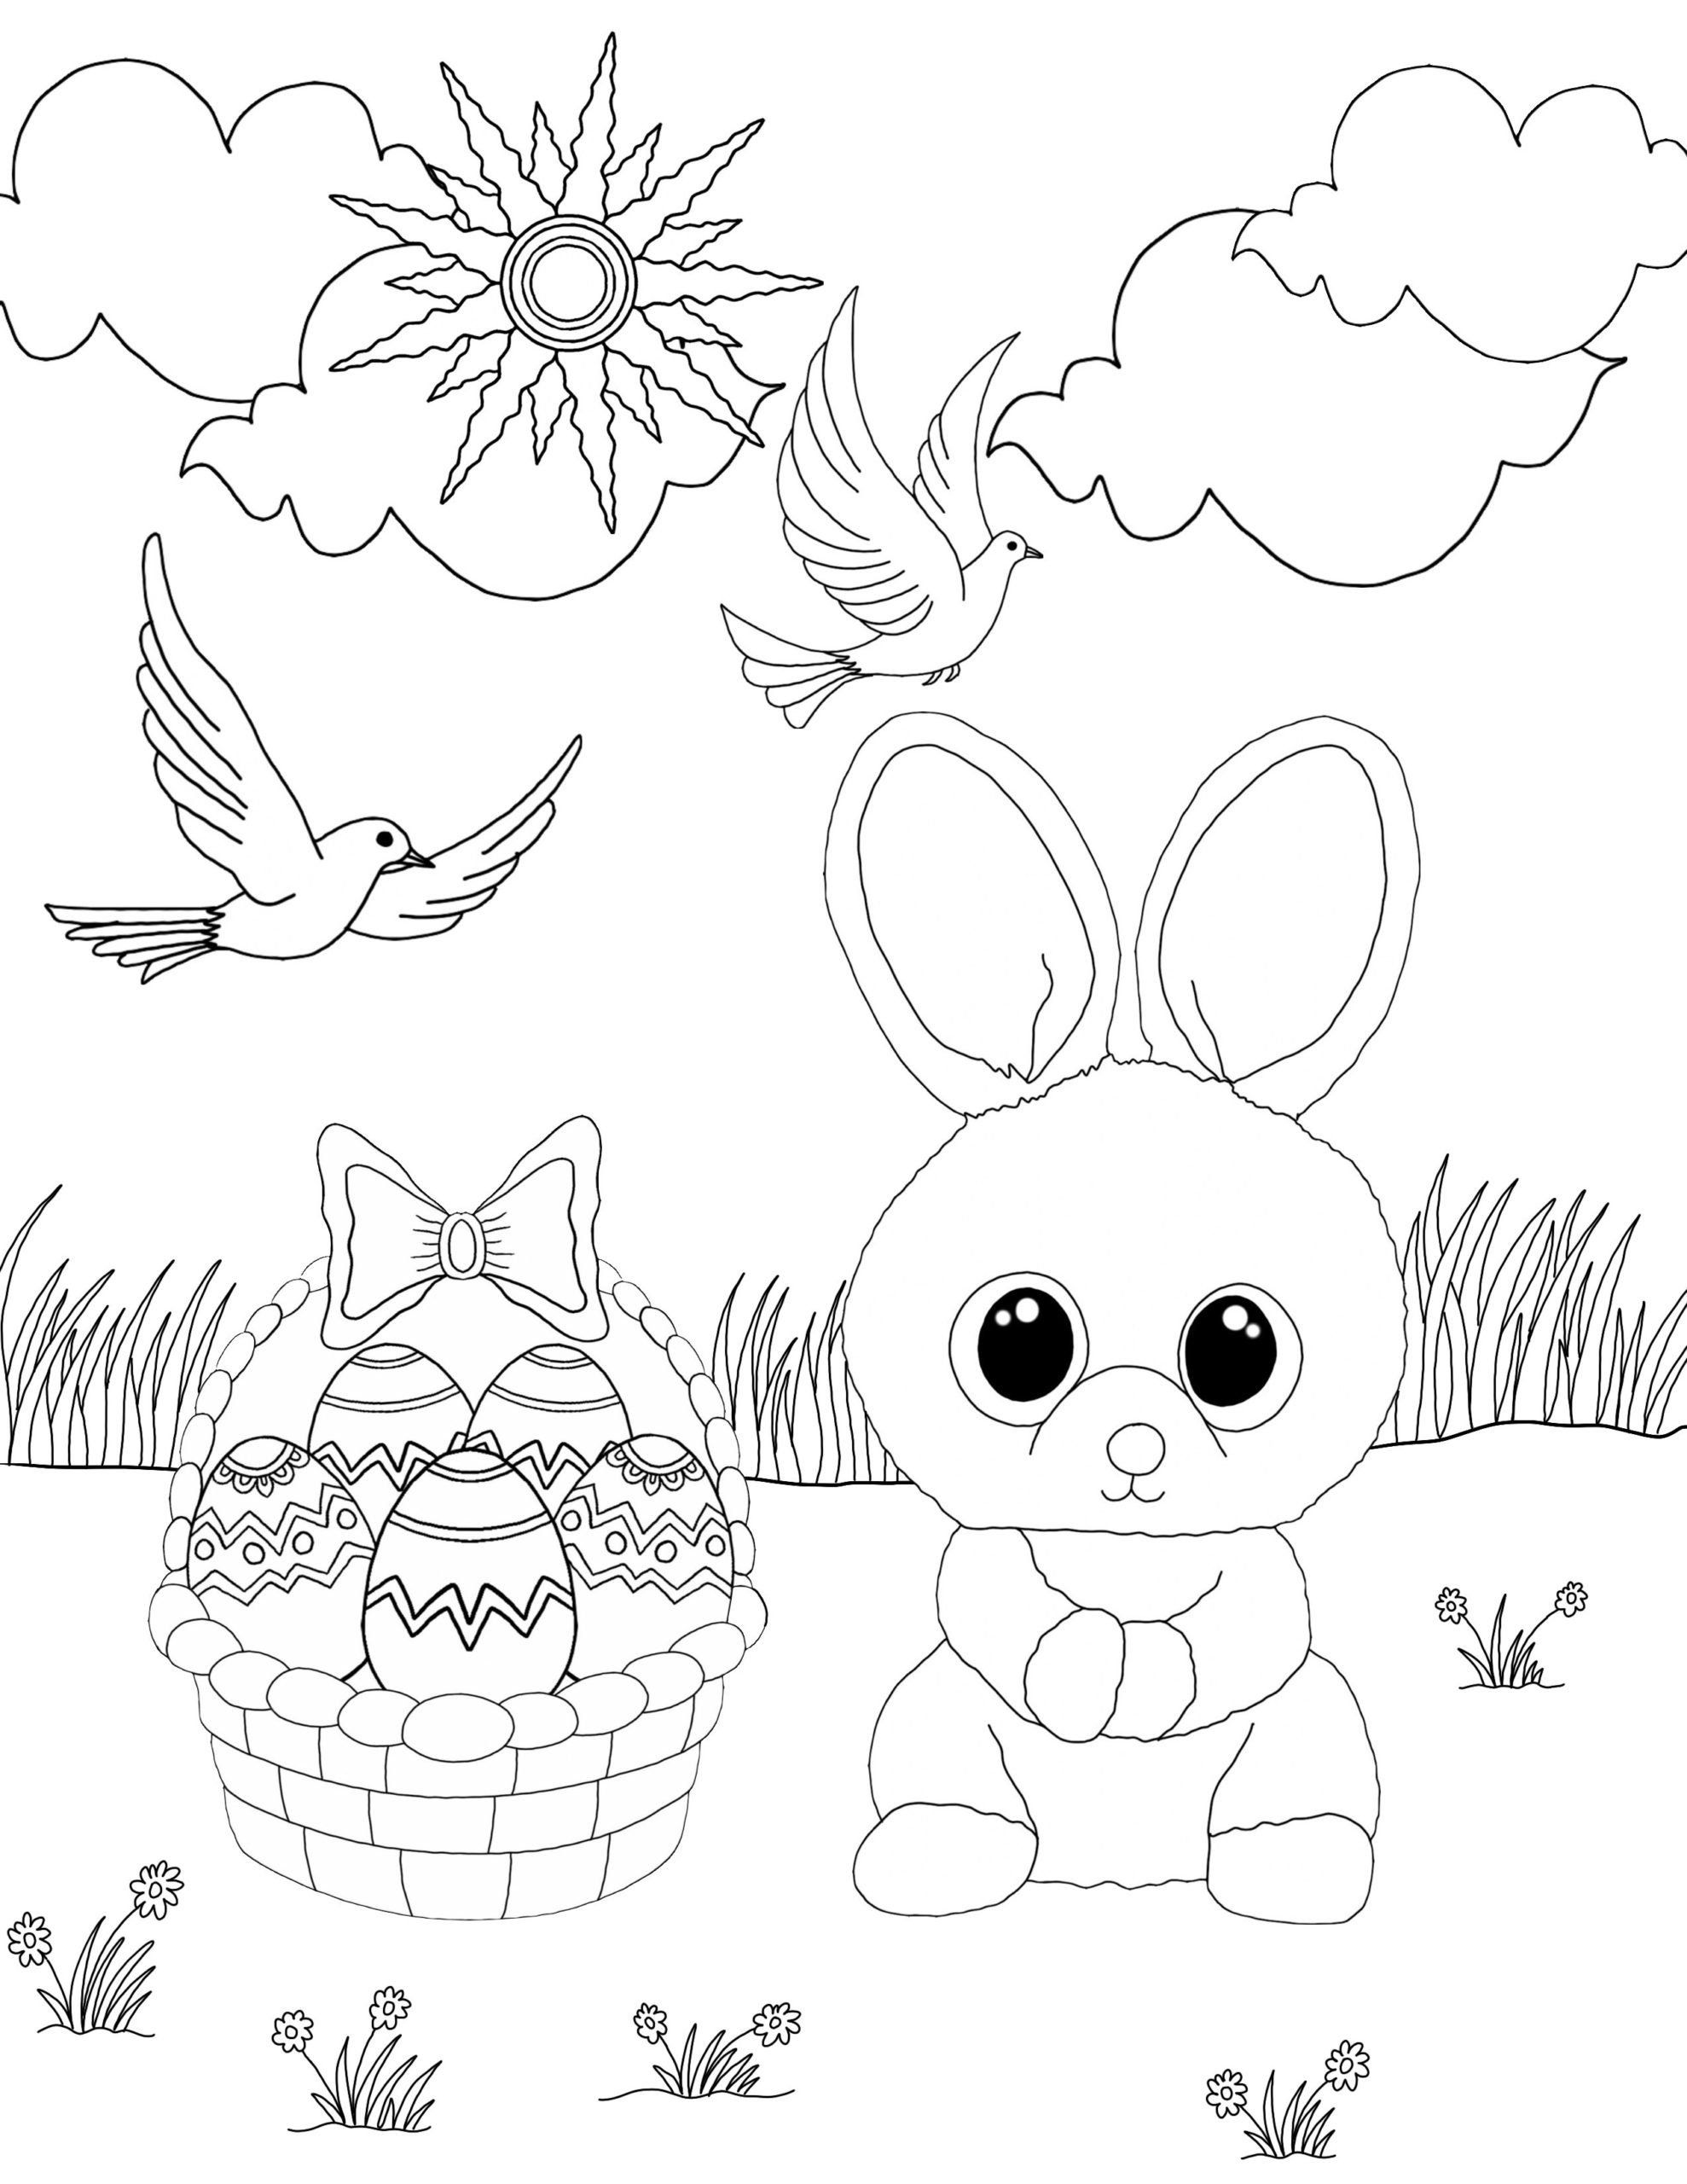 Cute Baby Bunny Coloring Pages Coloring Pages Bunny Cute Monkey Coloring Pages Puppy Coloring Pages Cartoon Coloring Pages